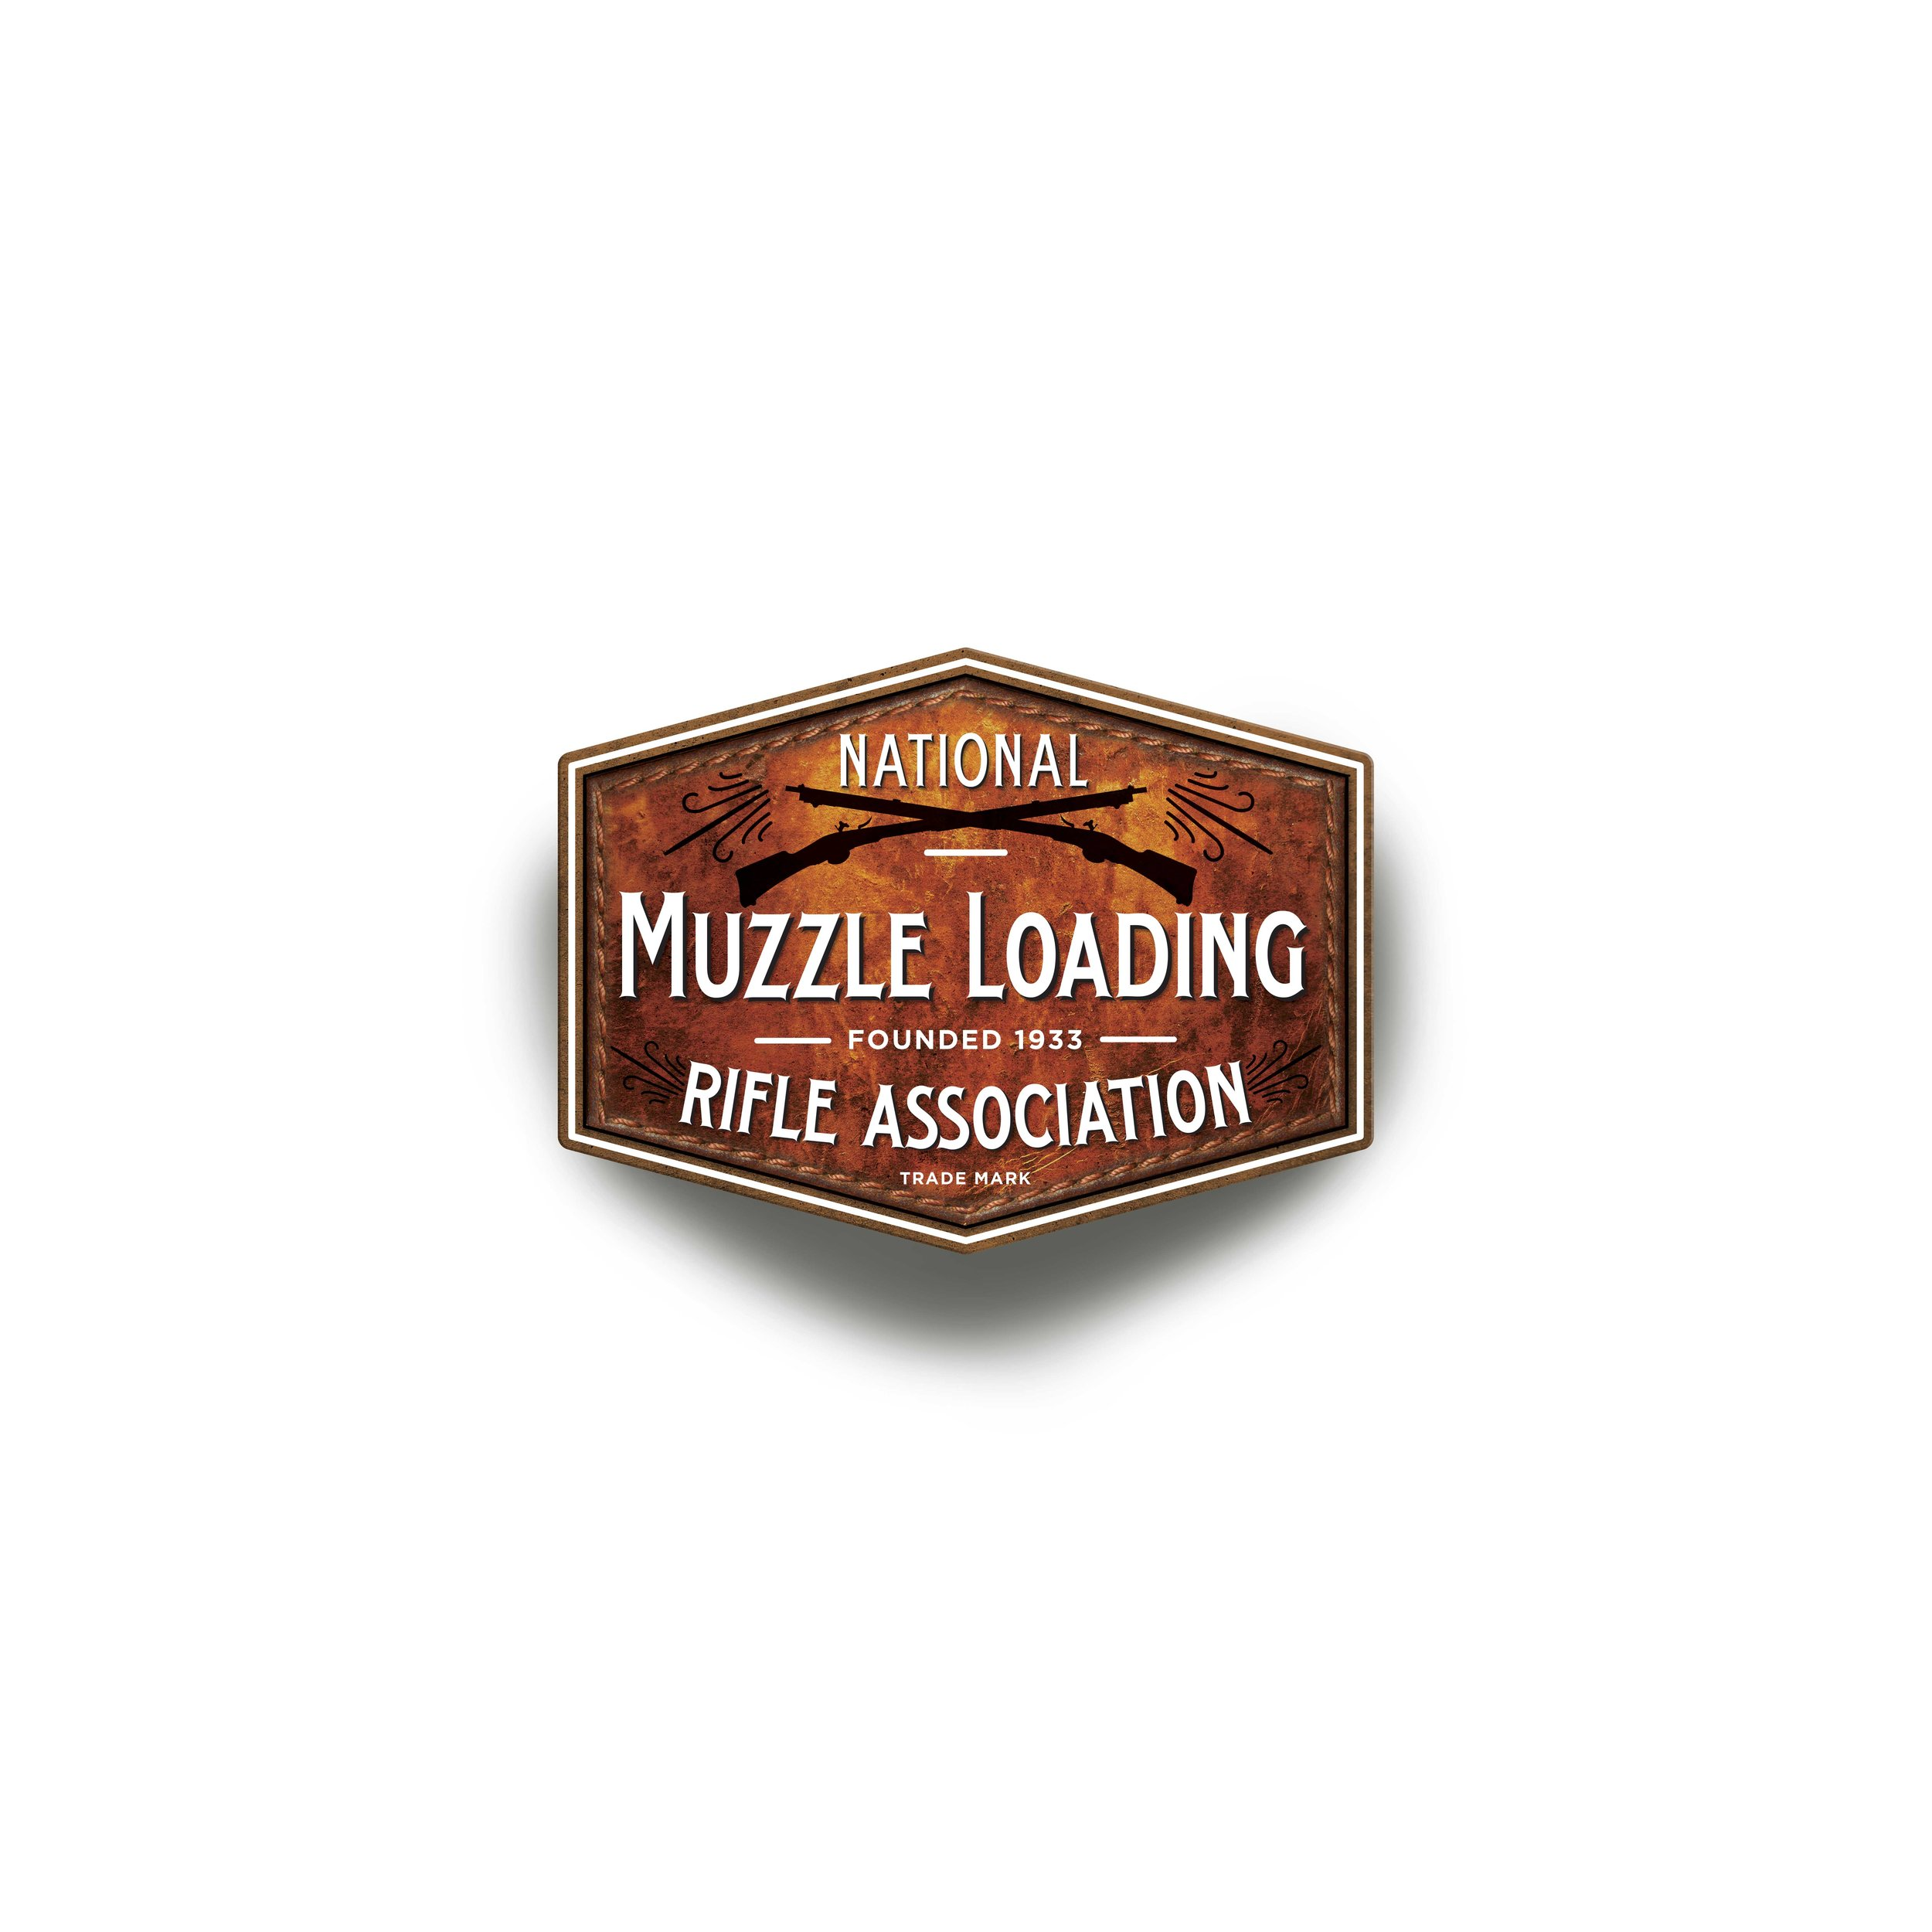 National Muzzle Loading Rifle Association Logo Design